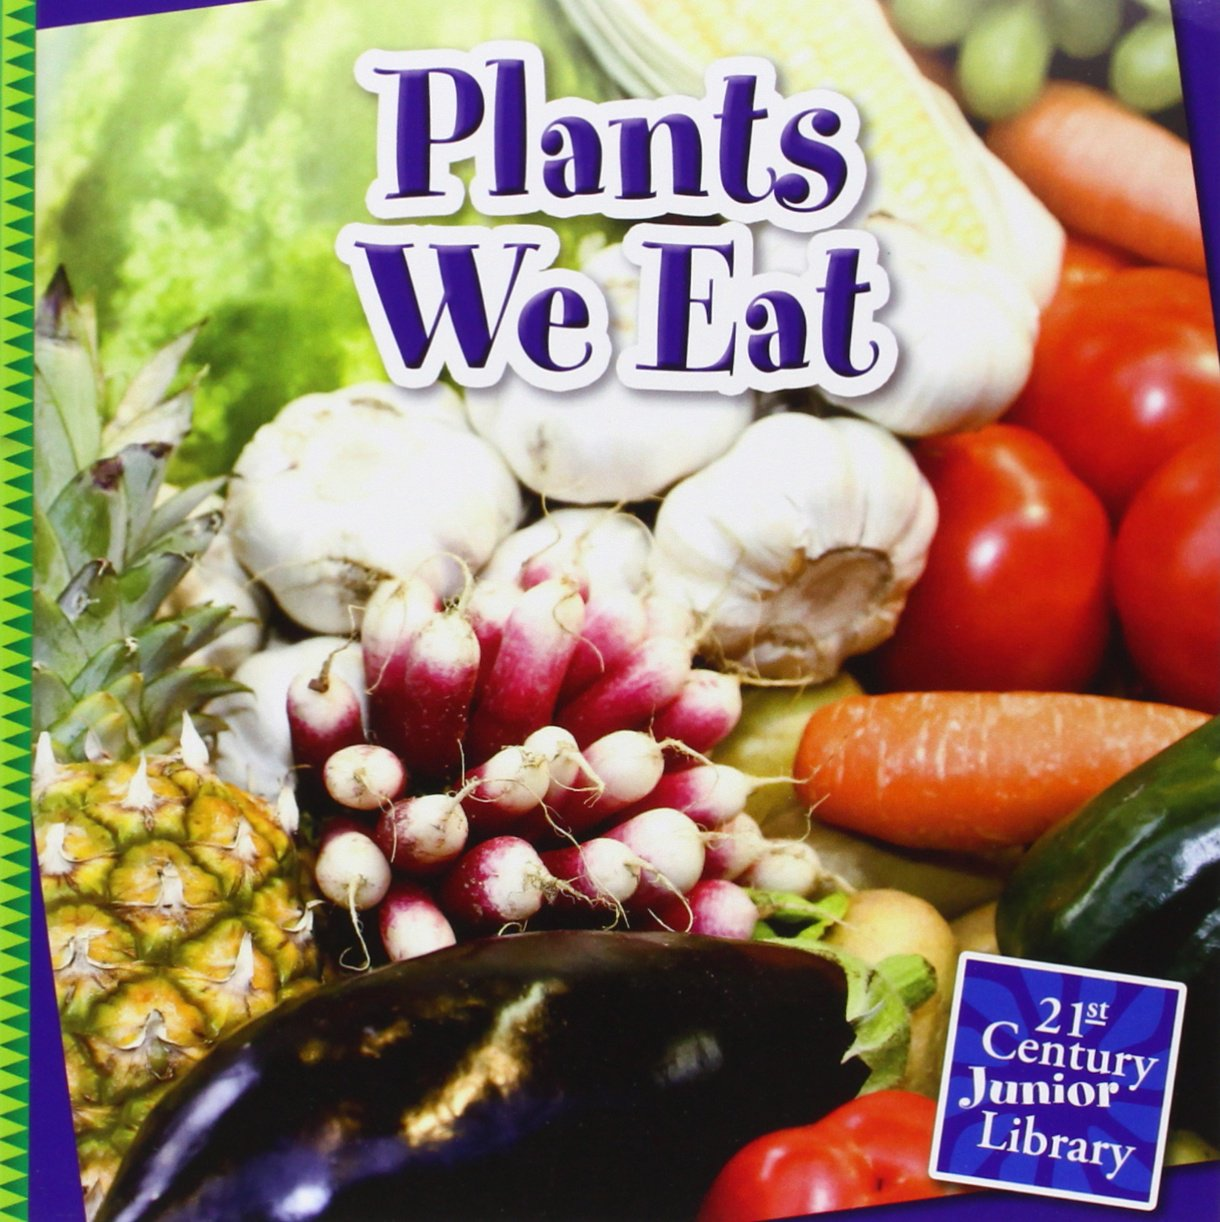 Plants We Eat (21st Century Junior Library)